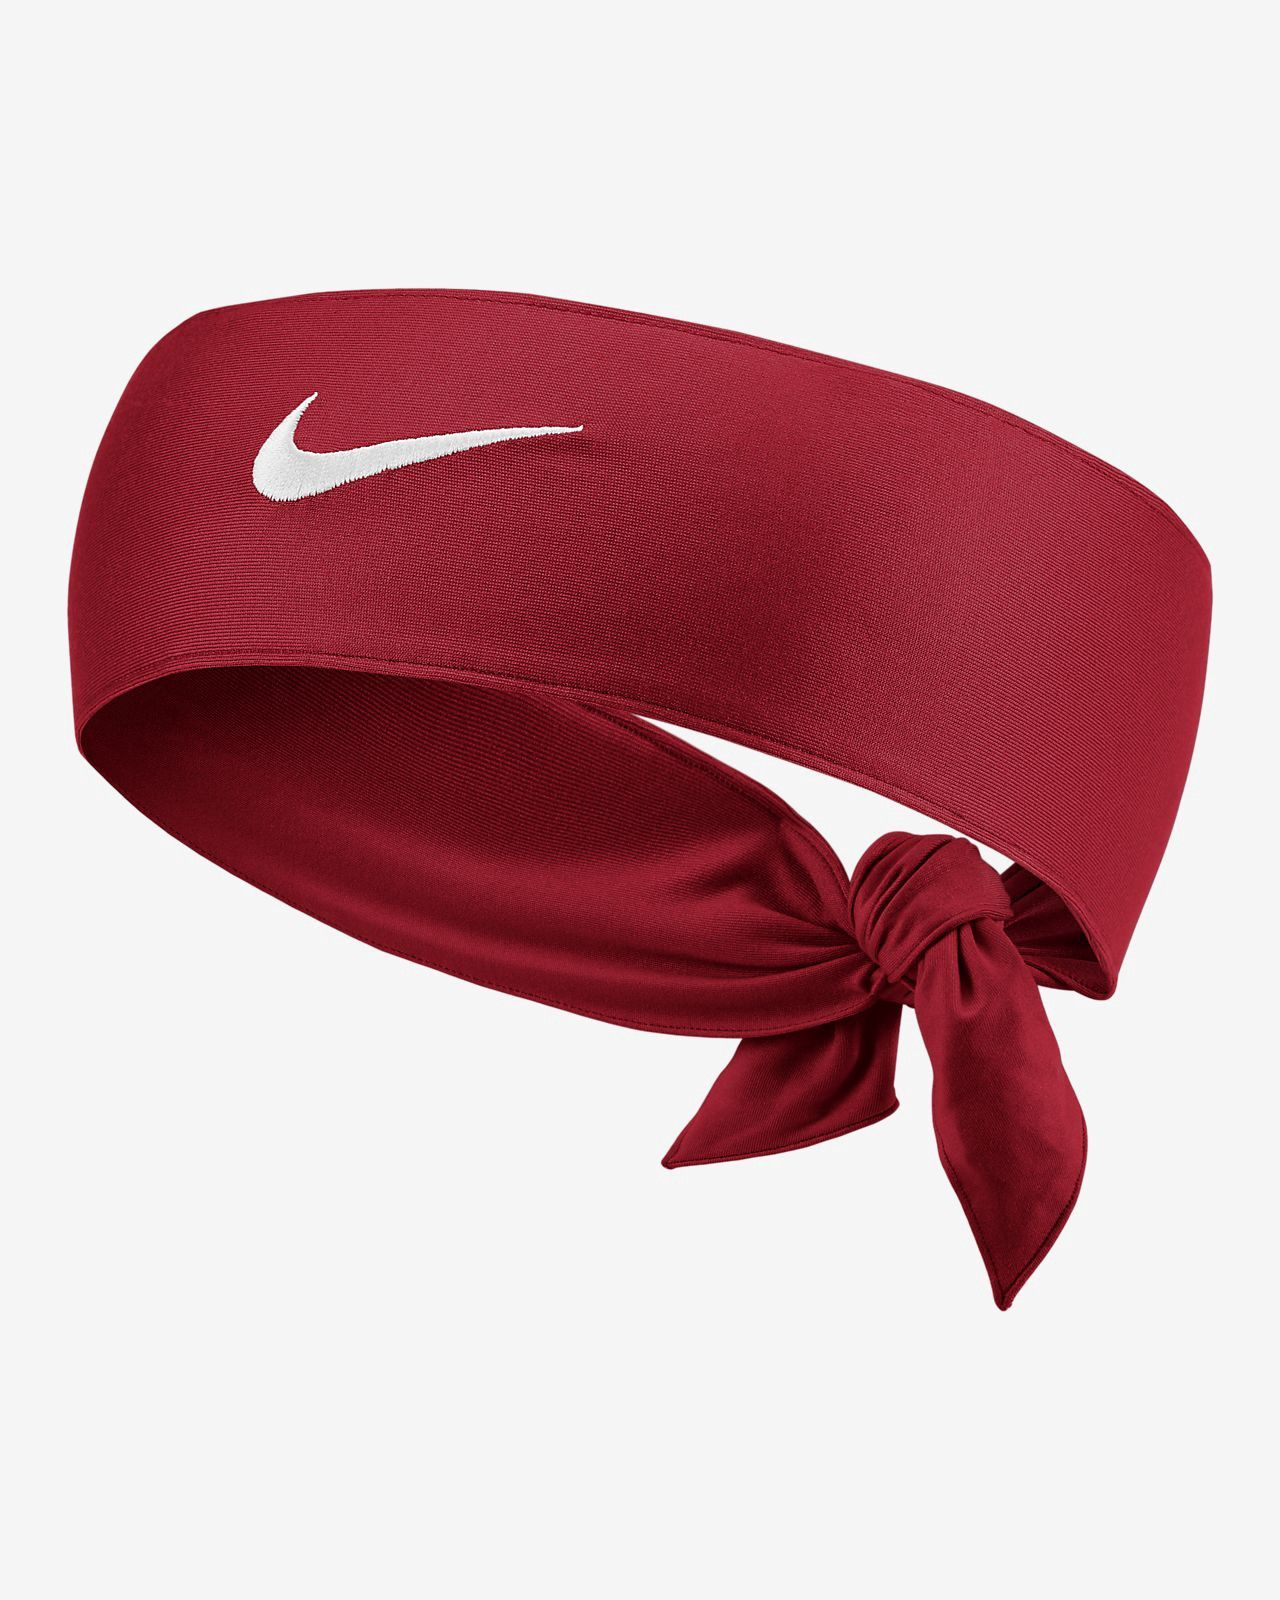 841f46916bda Nike Court Dri-Fit 2.0 Tennis Head Tie - Gym Red White Os